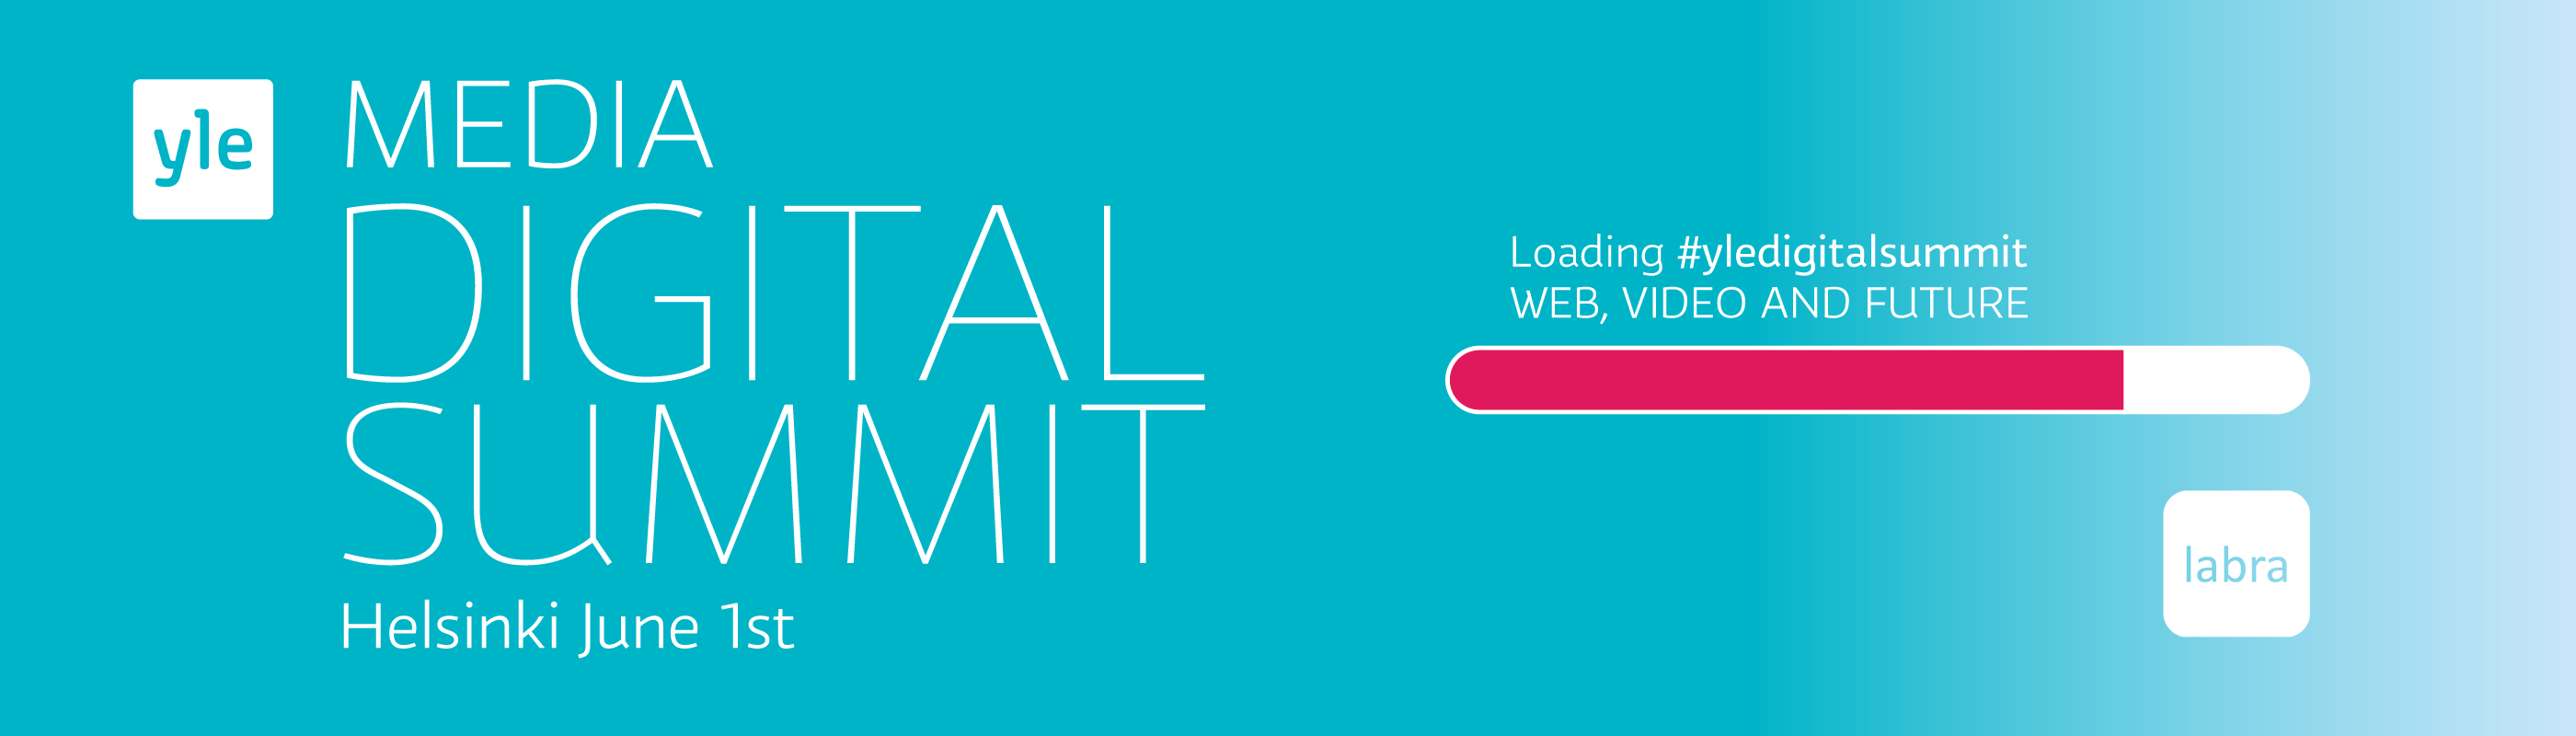 Subject page header image for Digitalsummit